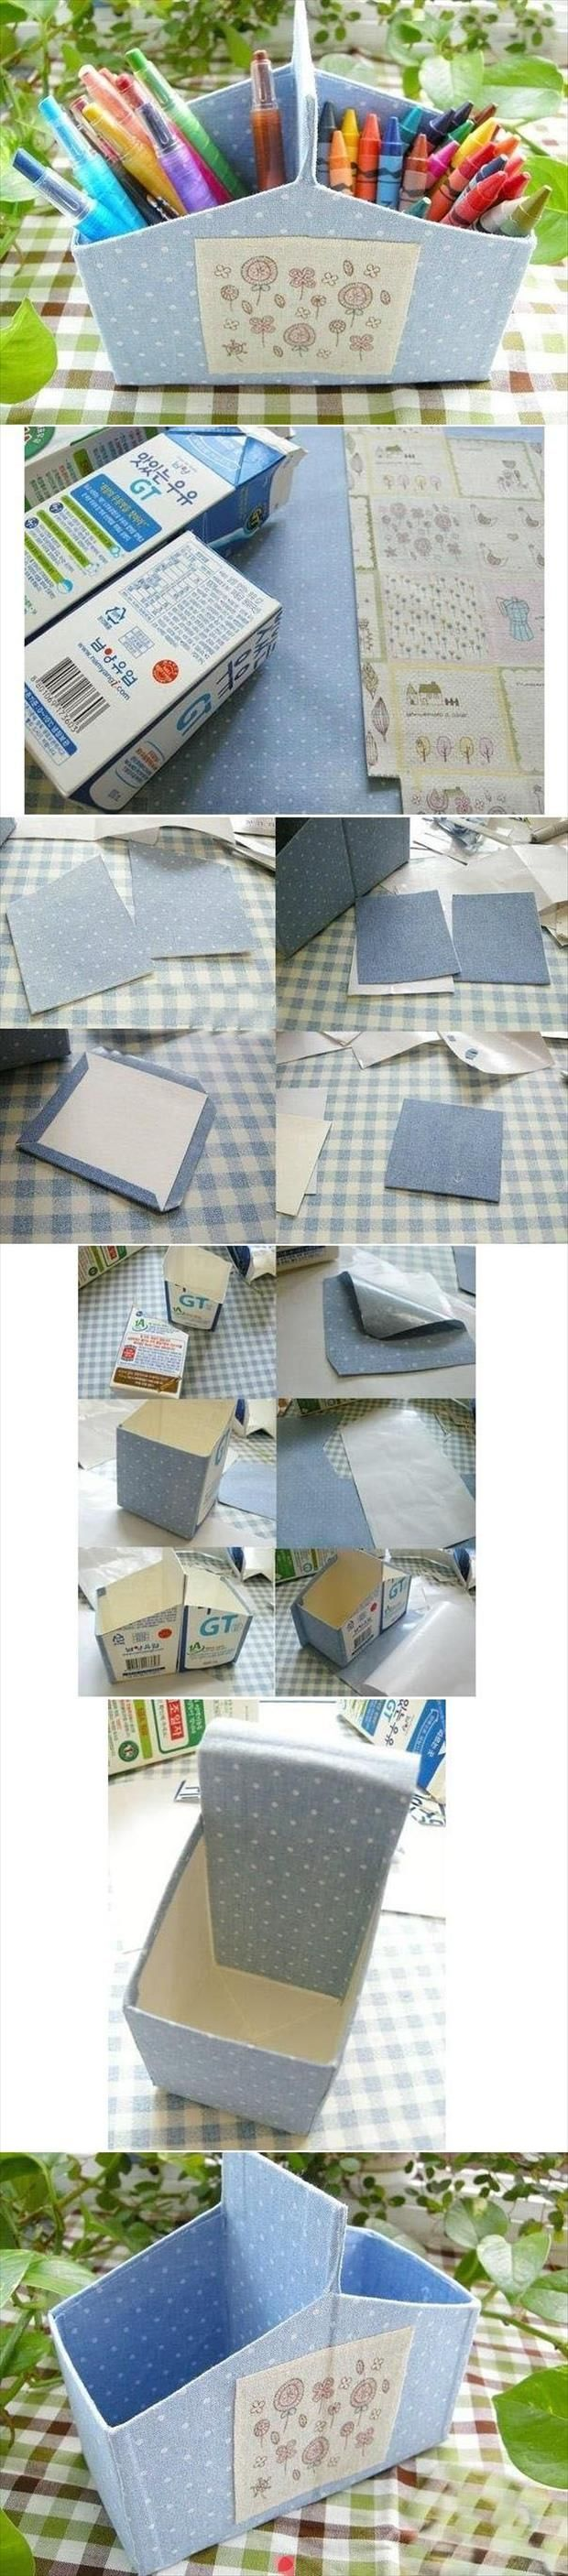 Fun Do It Yourself Craft Ideas � 30 Pics